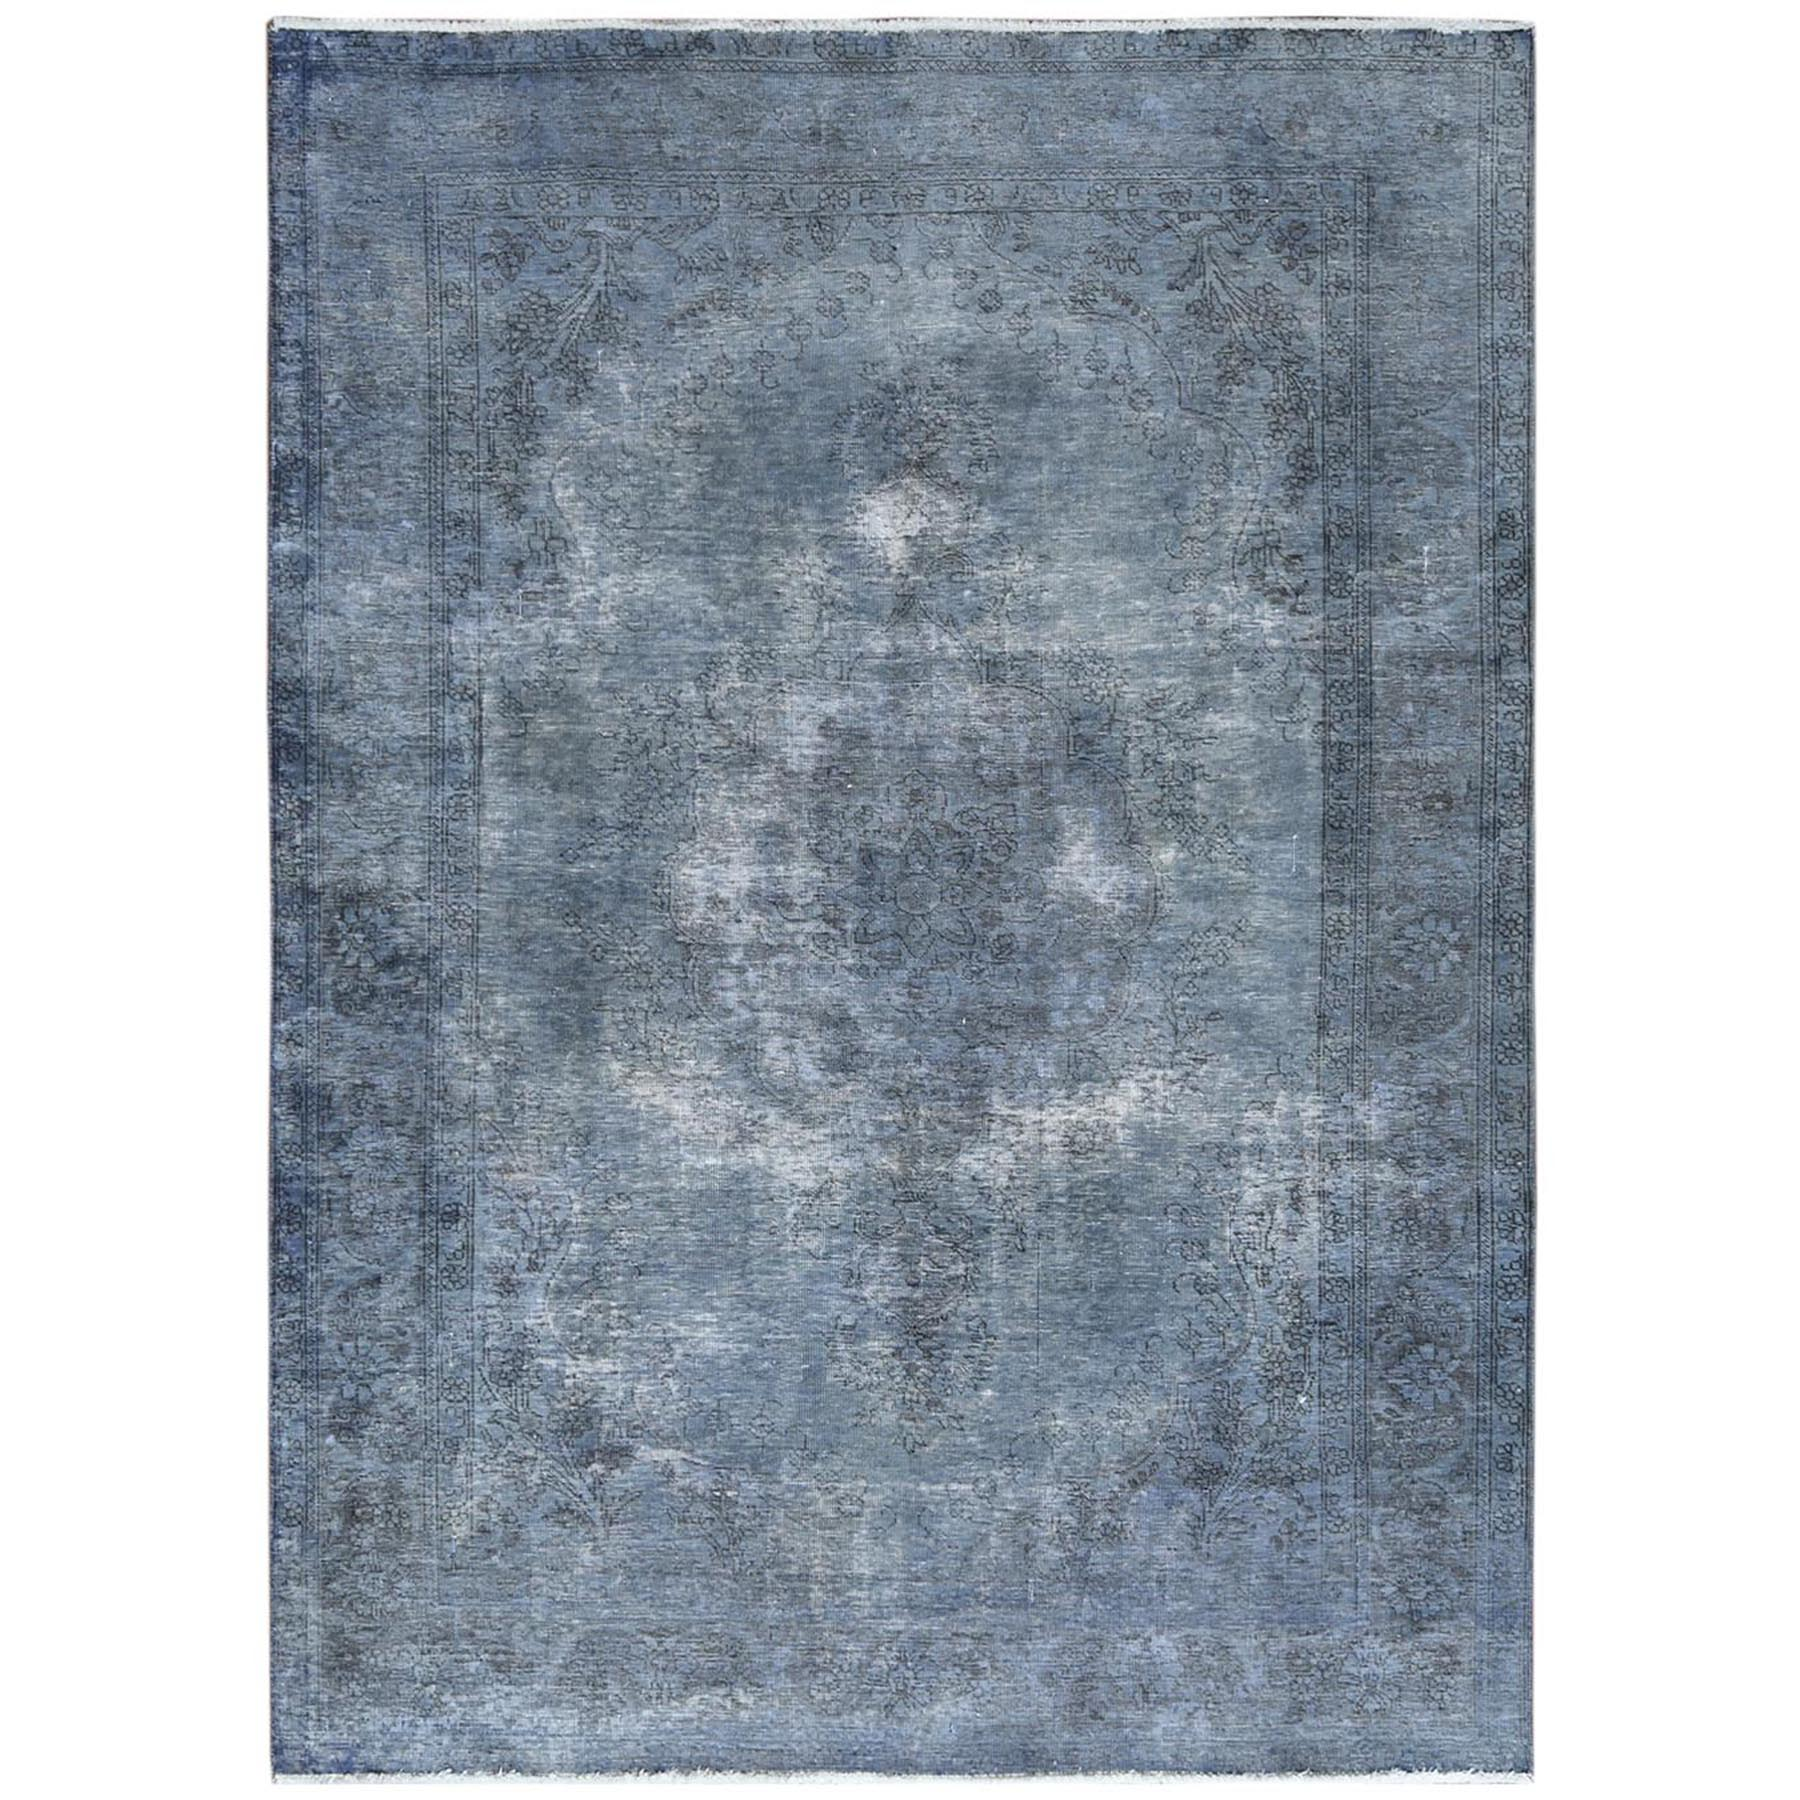 Fetneh Collection And Vintage Overdyed Collection Hand Knotted Blue Rug No: 1122470